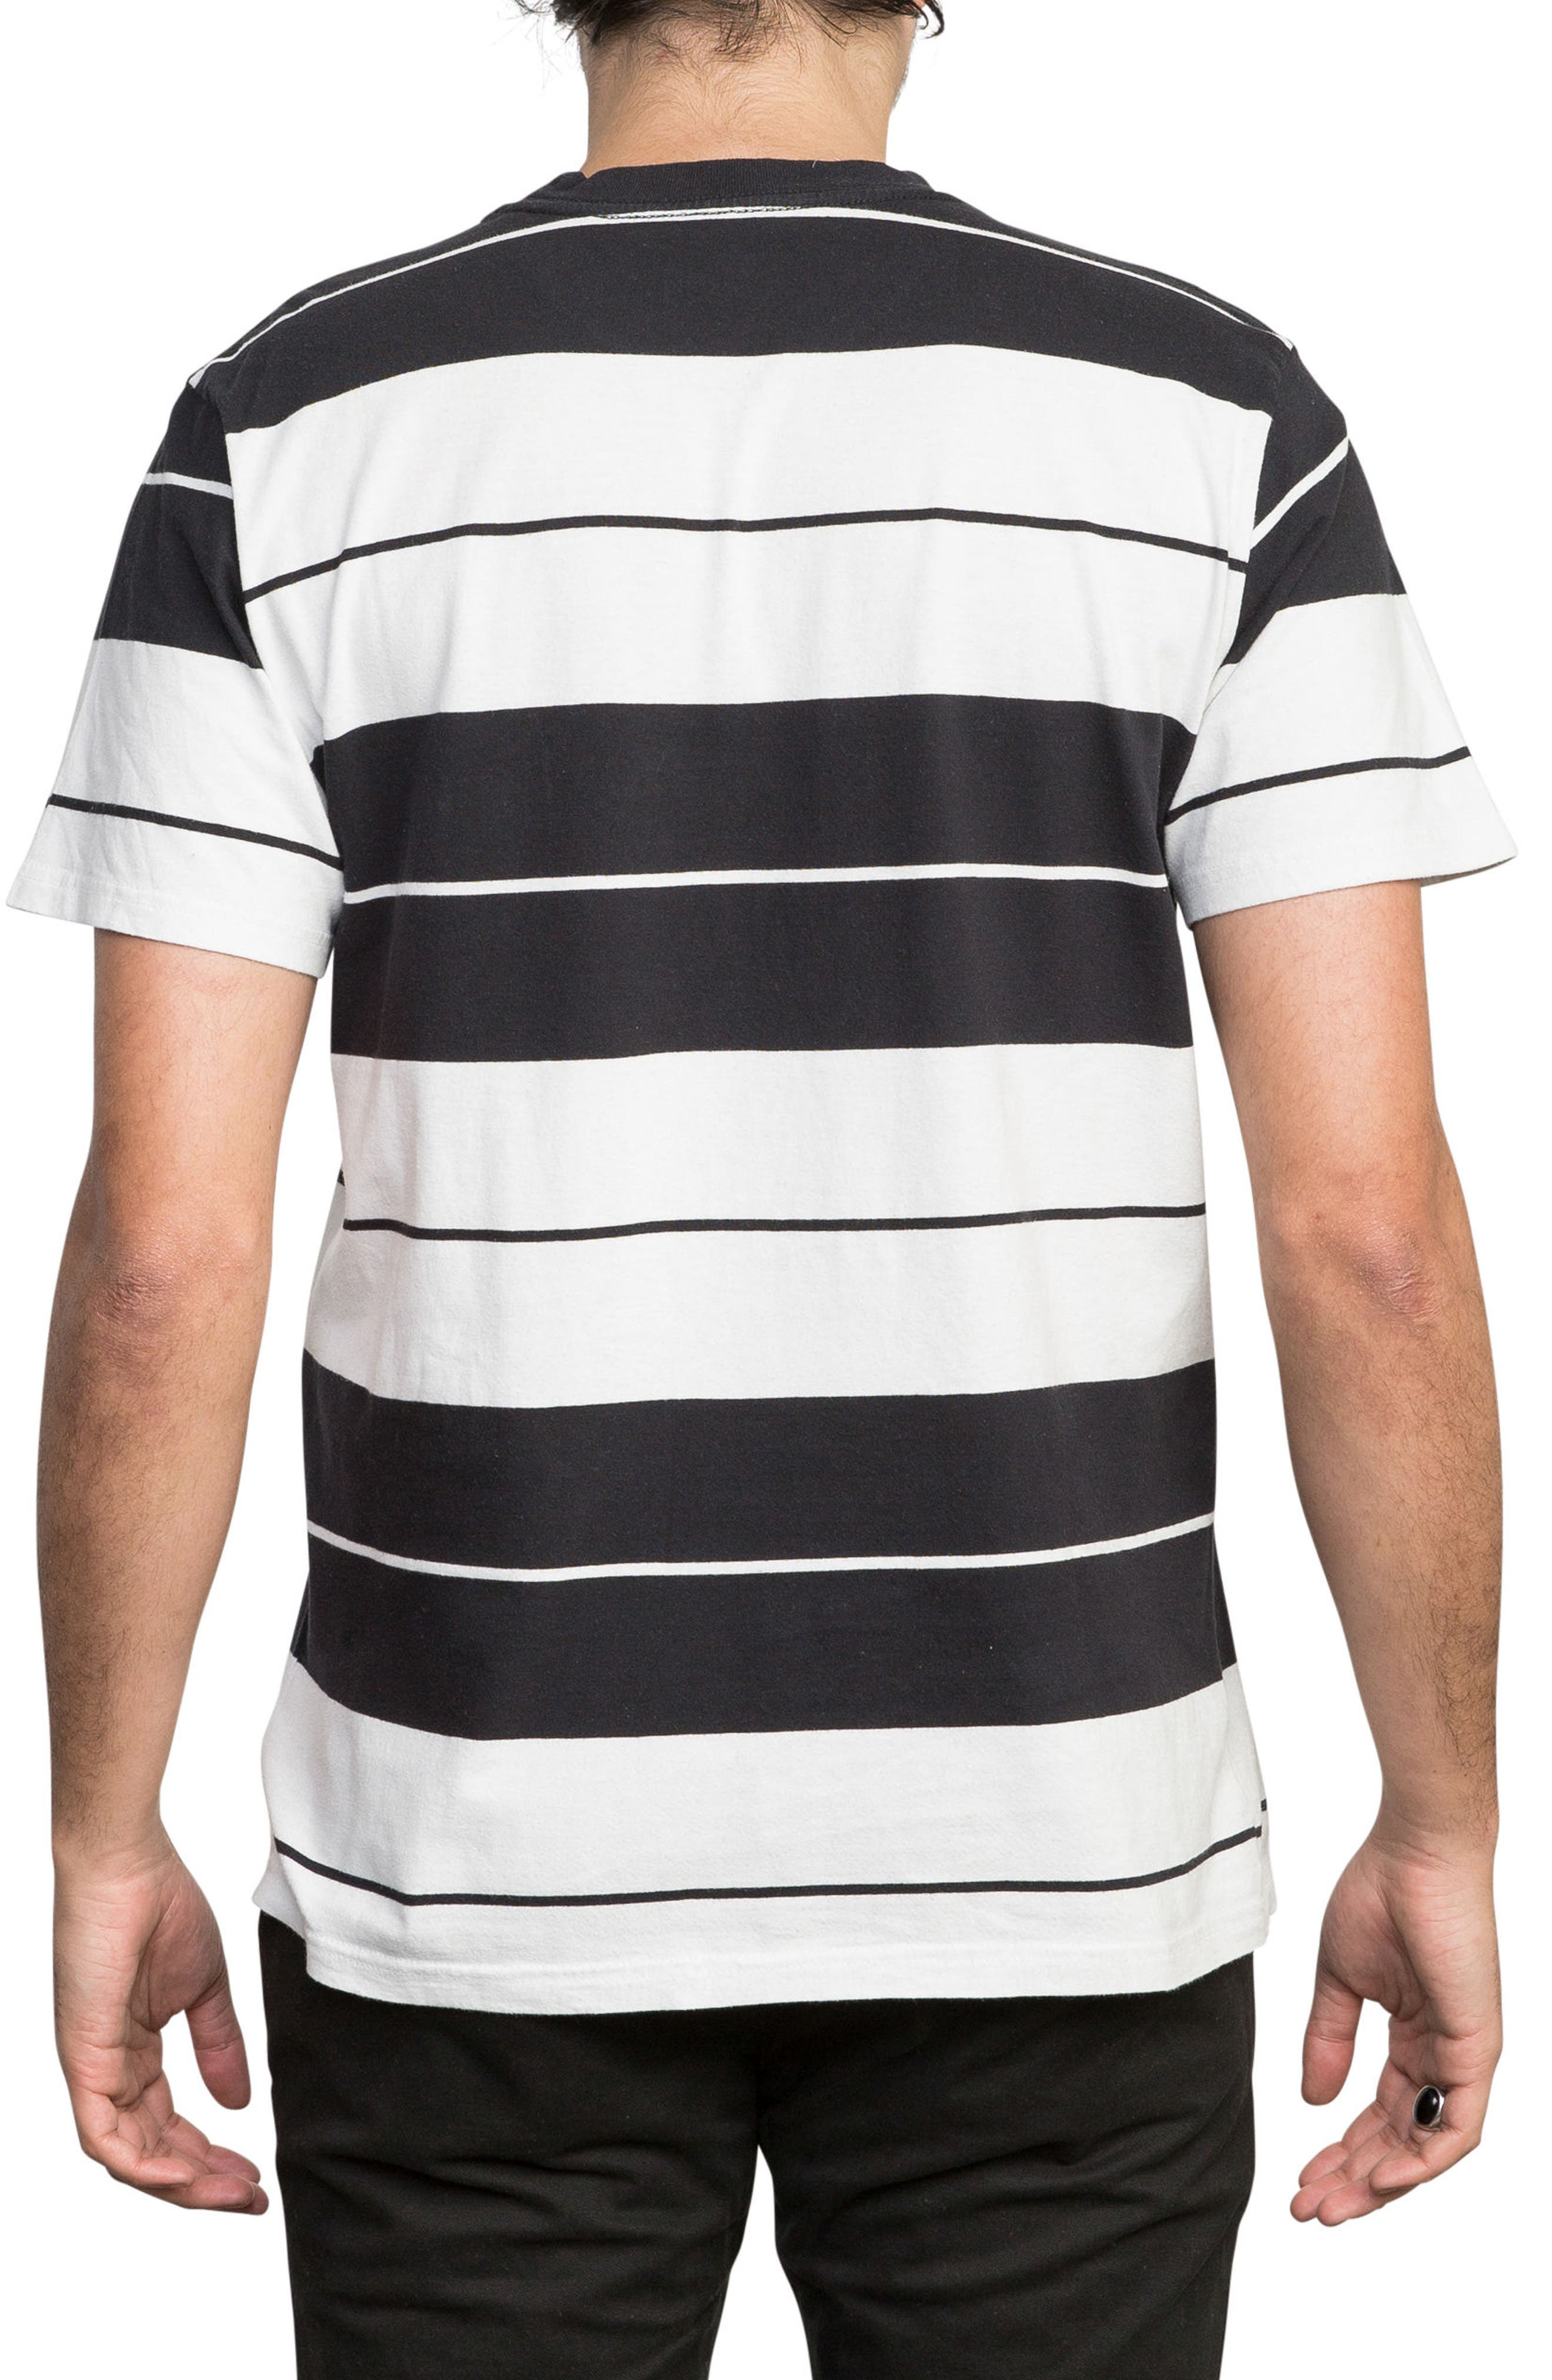 Ellis Stripe Pocket T-Shirt,                             Alternate thumbnail 2, color,                             BLACK